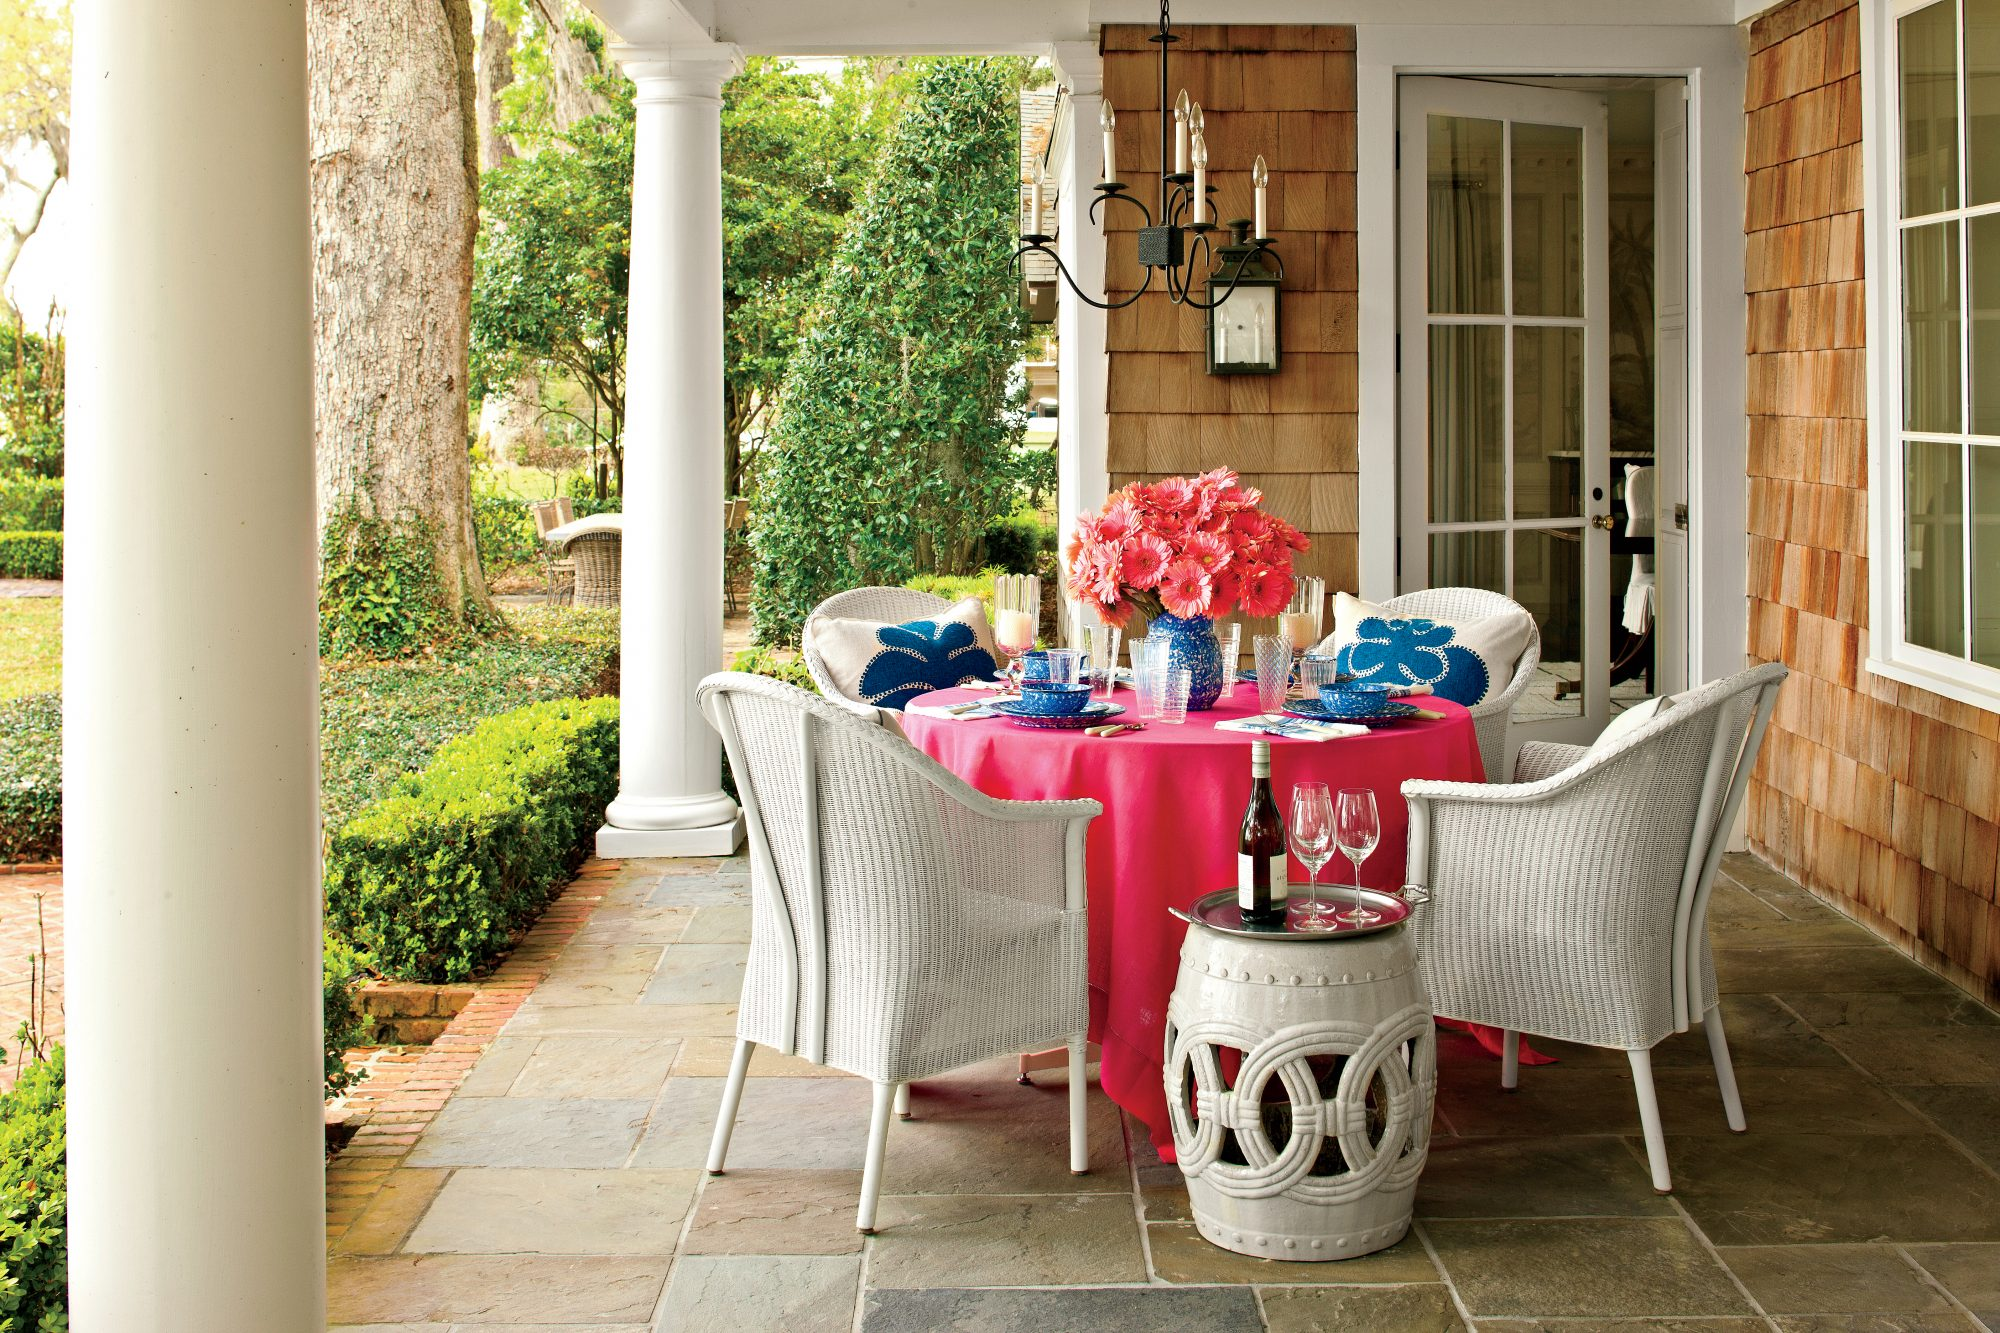 Cozy Outdoor Dining Area: Bright Tablescape